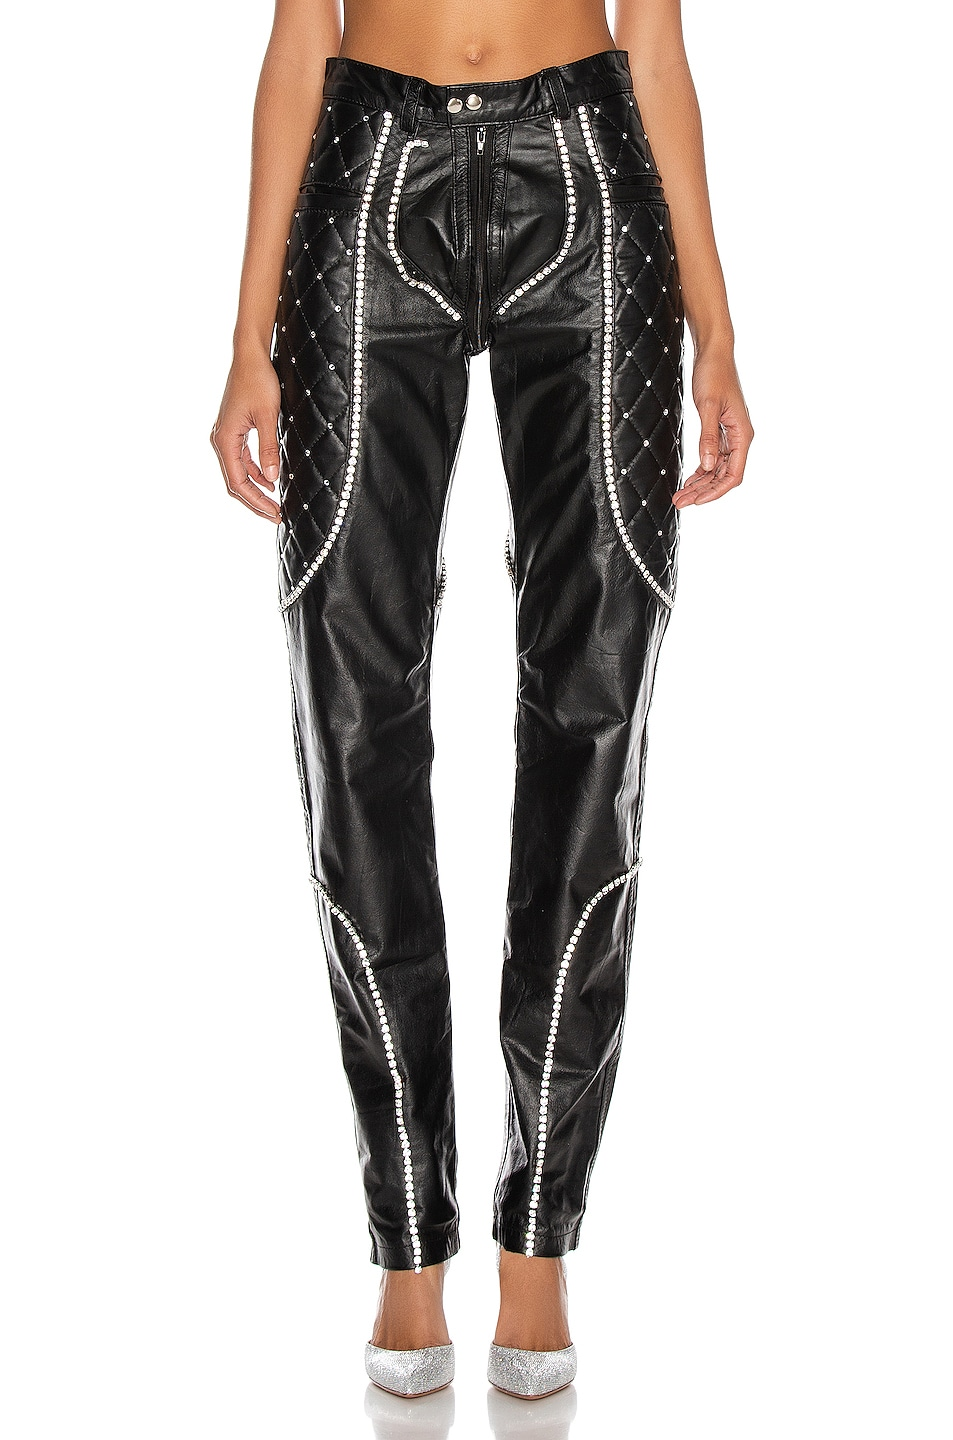 Image 1 of CHRISTIAN COWAN Leather and Swarovski Crystal Skinny Pant in Black 1